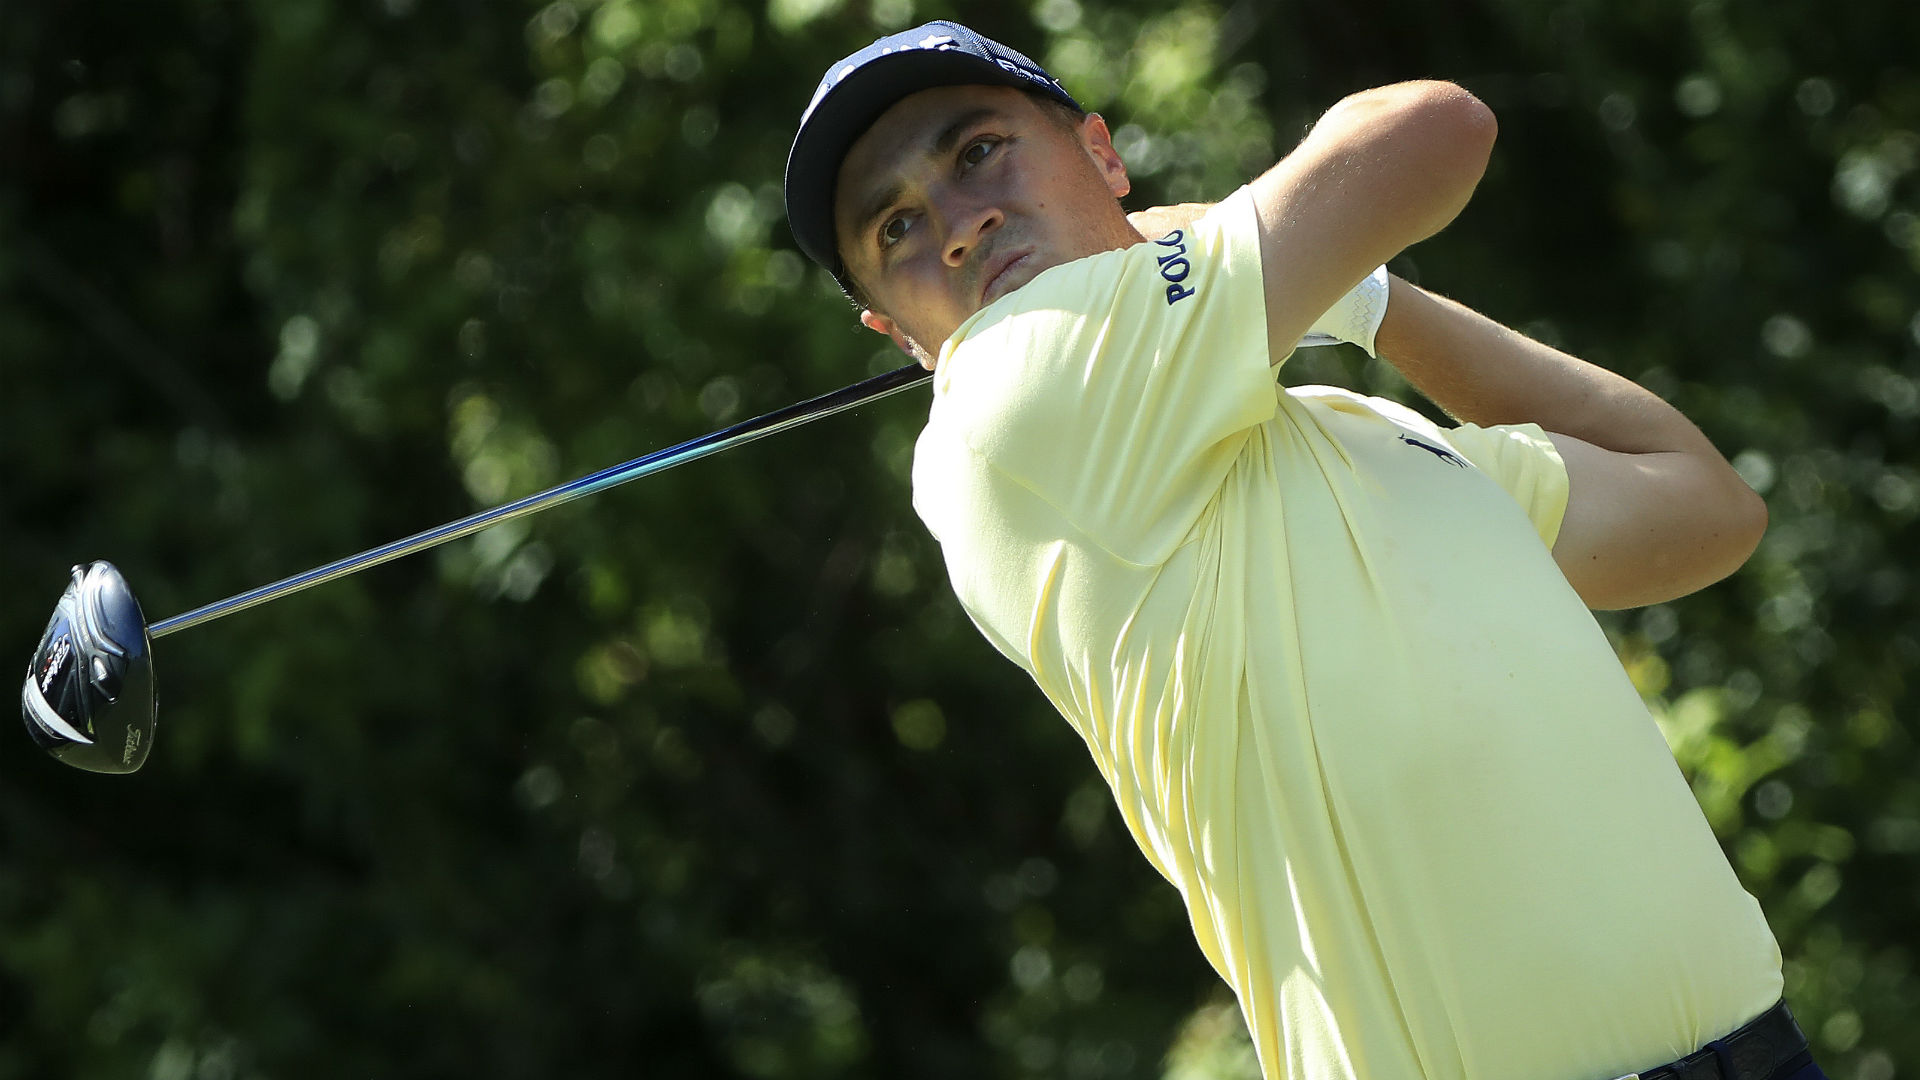 Justin Thomas getting European exposure ahead of Open Championship, Ryder Cup